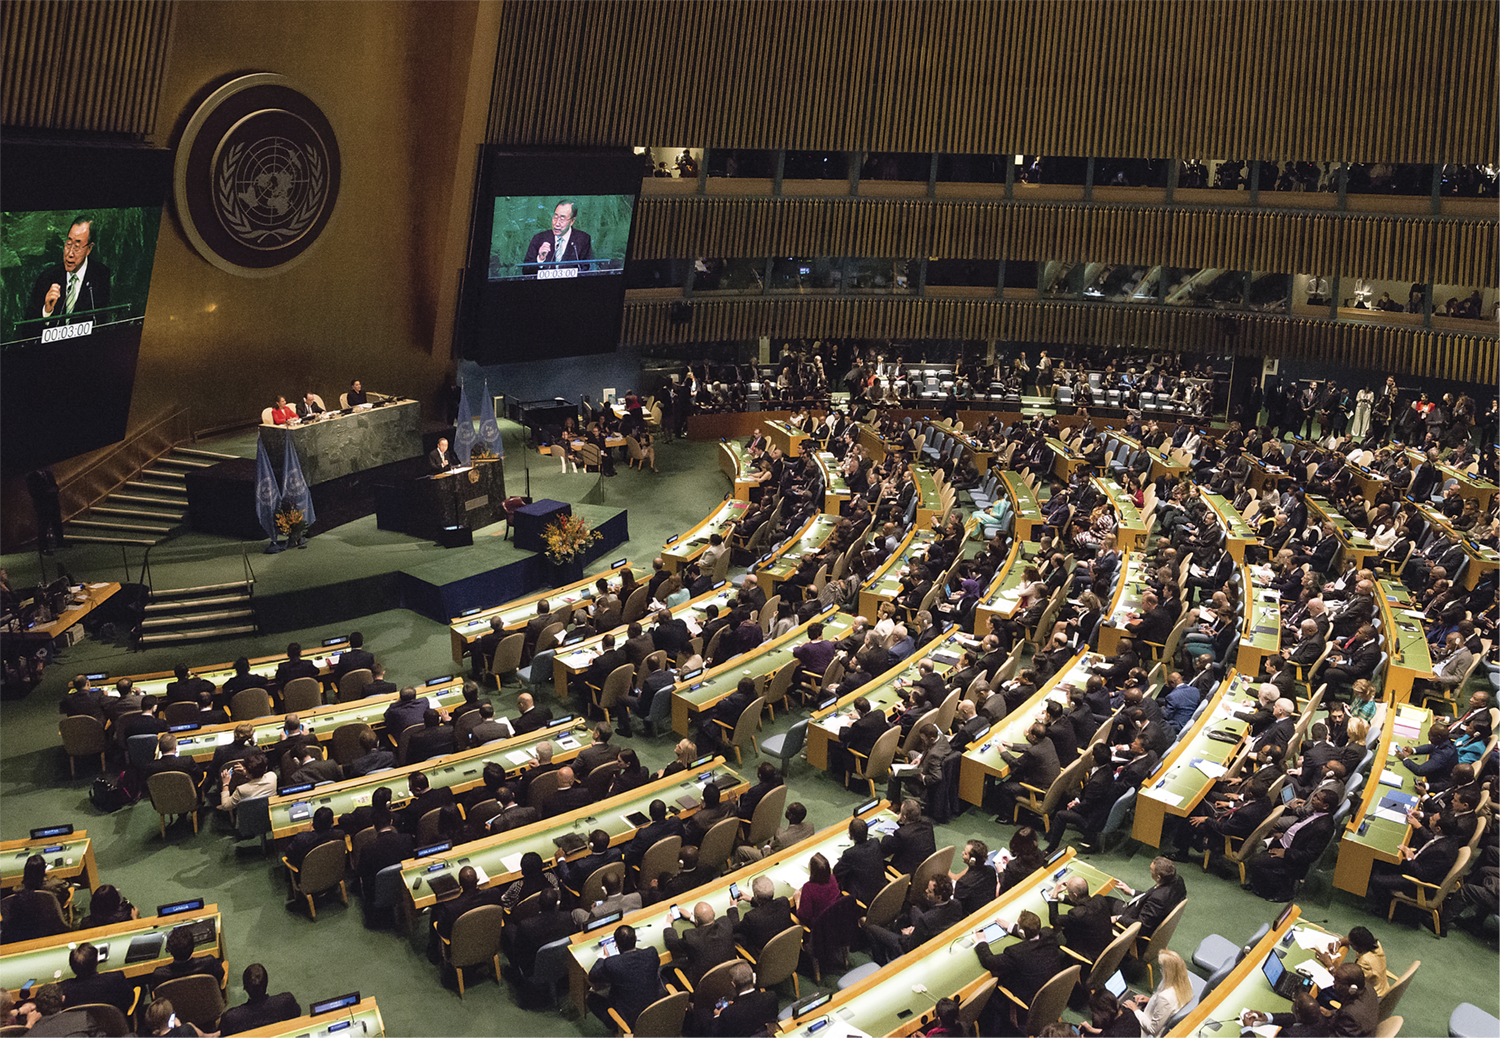 Leaders from around the world gathered in April 2016 at UN Headquarters in New York City to sign the Global Climate Agreement resulting from the COP21 conference in Paris the previous year. (ALBIN LOHR-JONES/PACIFIC PRESS/LIGHTROCKET VIA GETTY IMAGES)